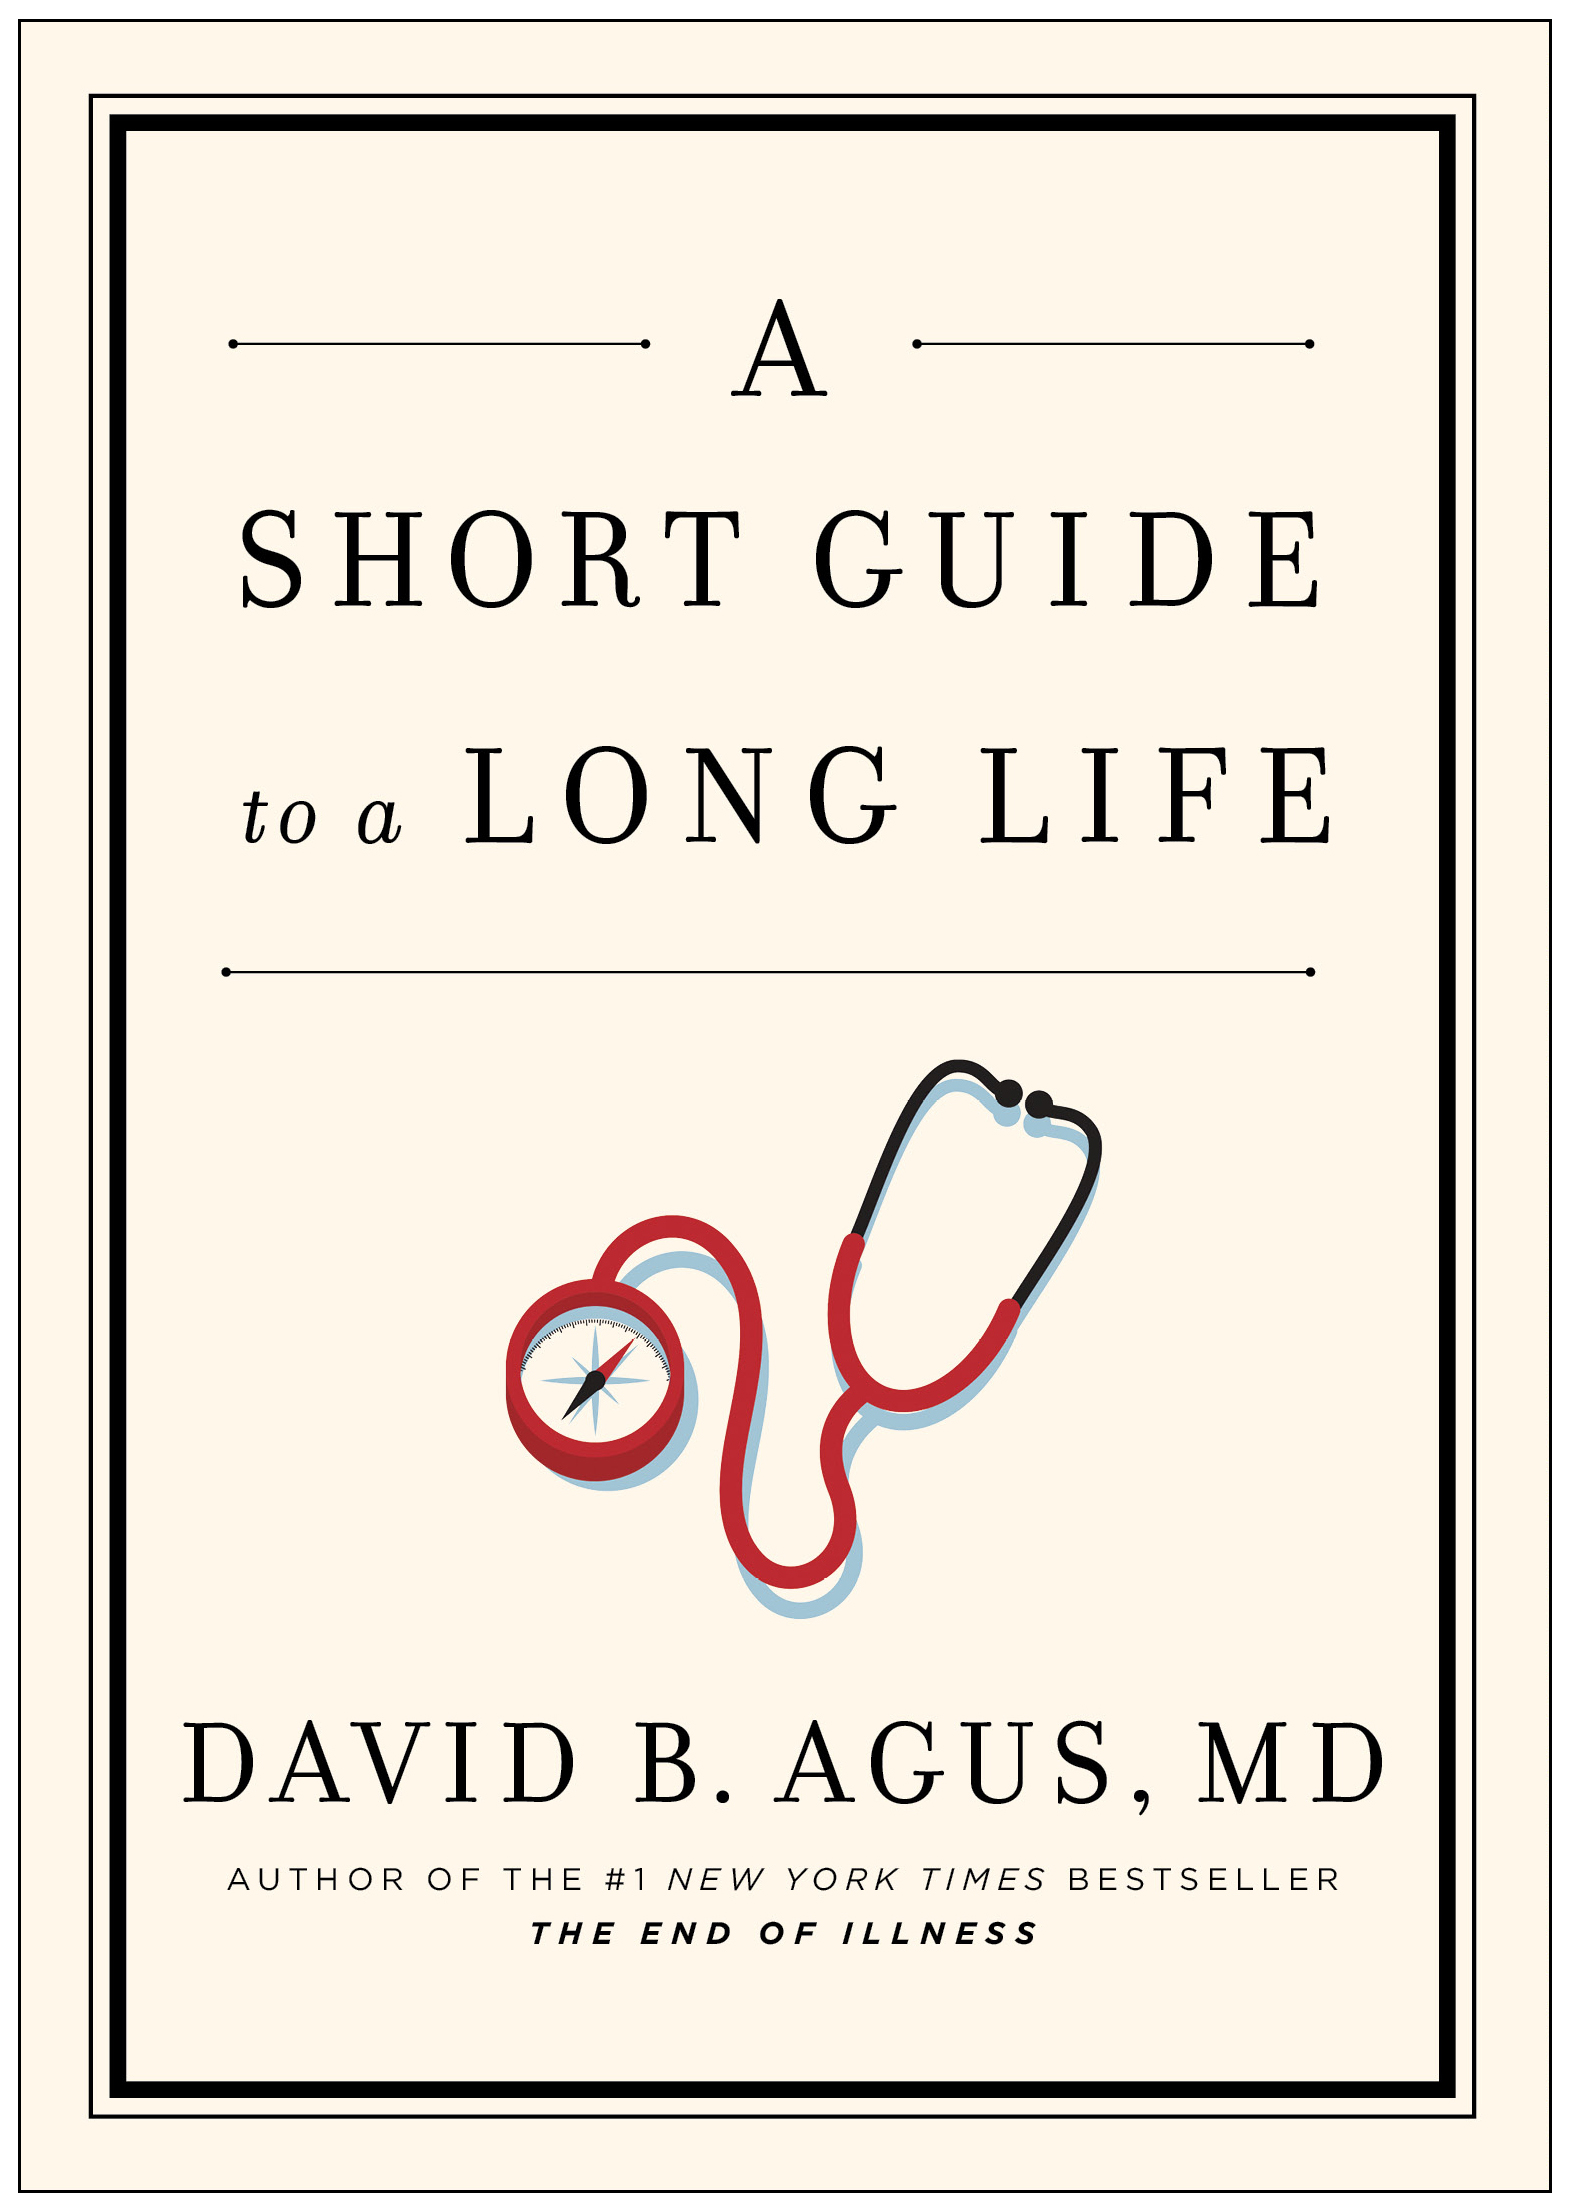 Short-guide-to-a-long-life-9781476730950_hr